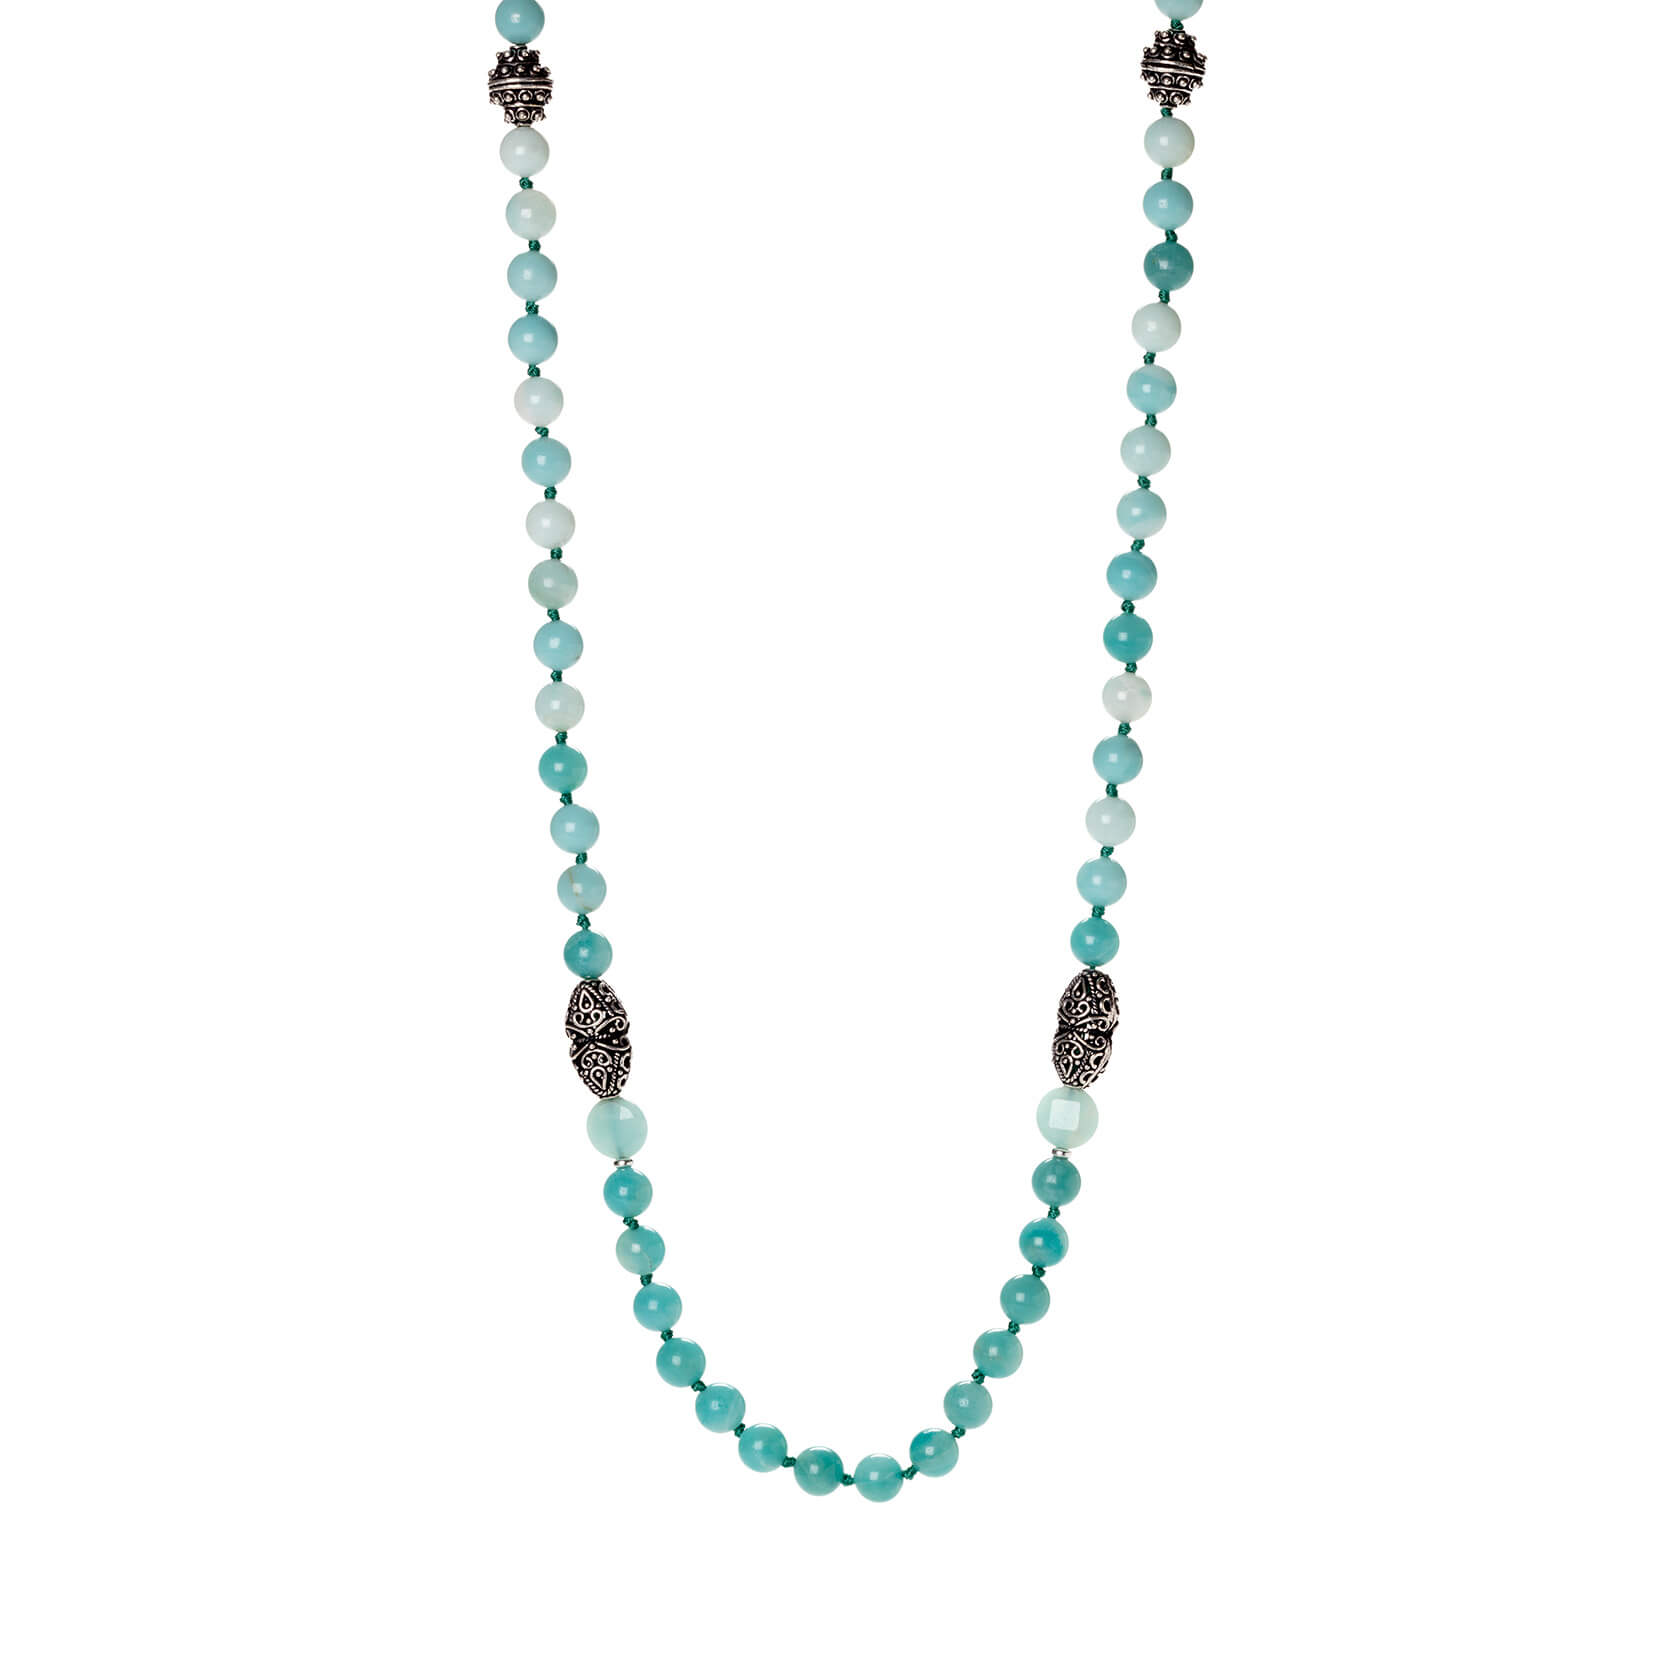 Amazonite cora long necklace